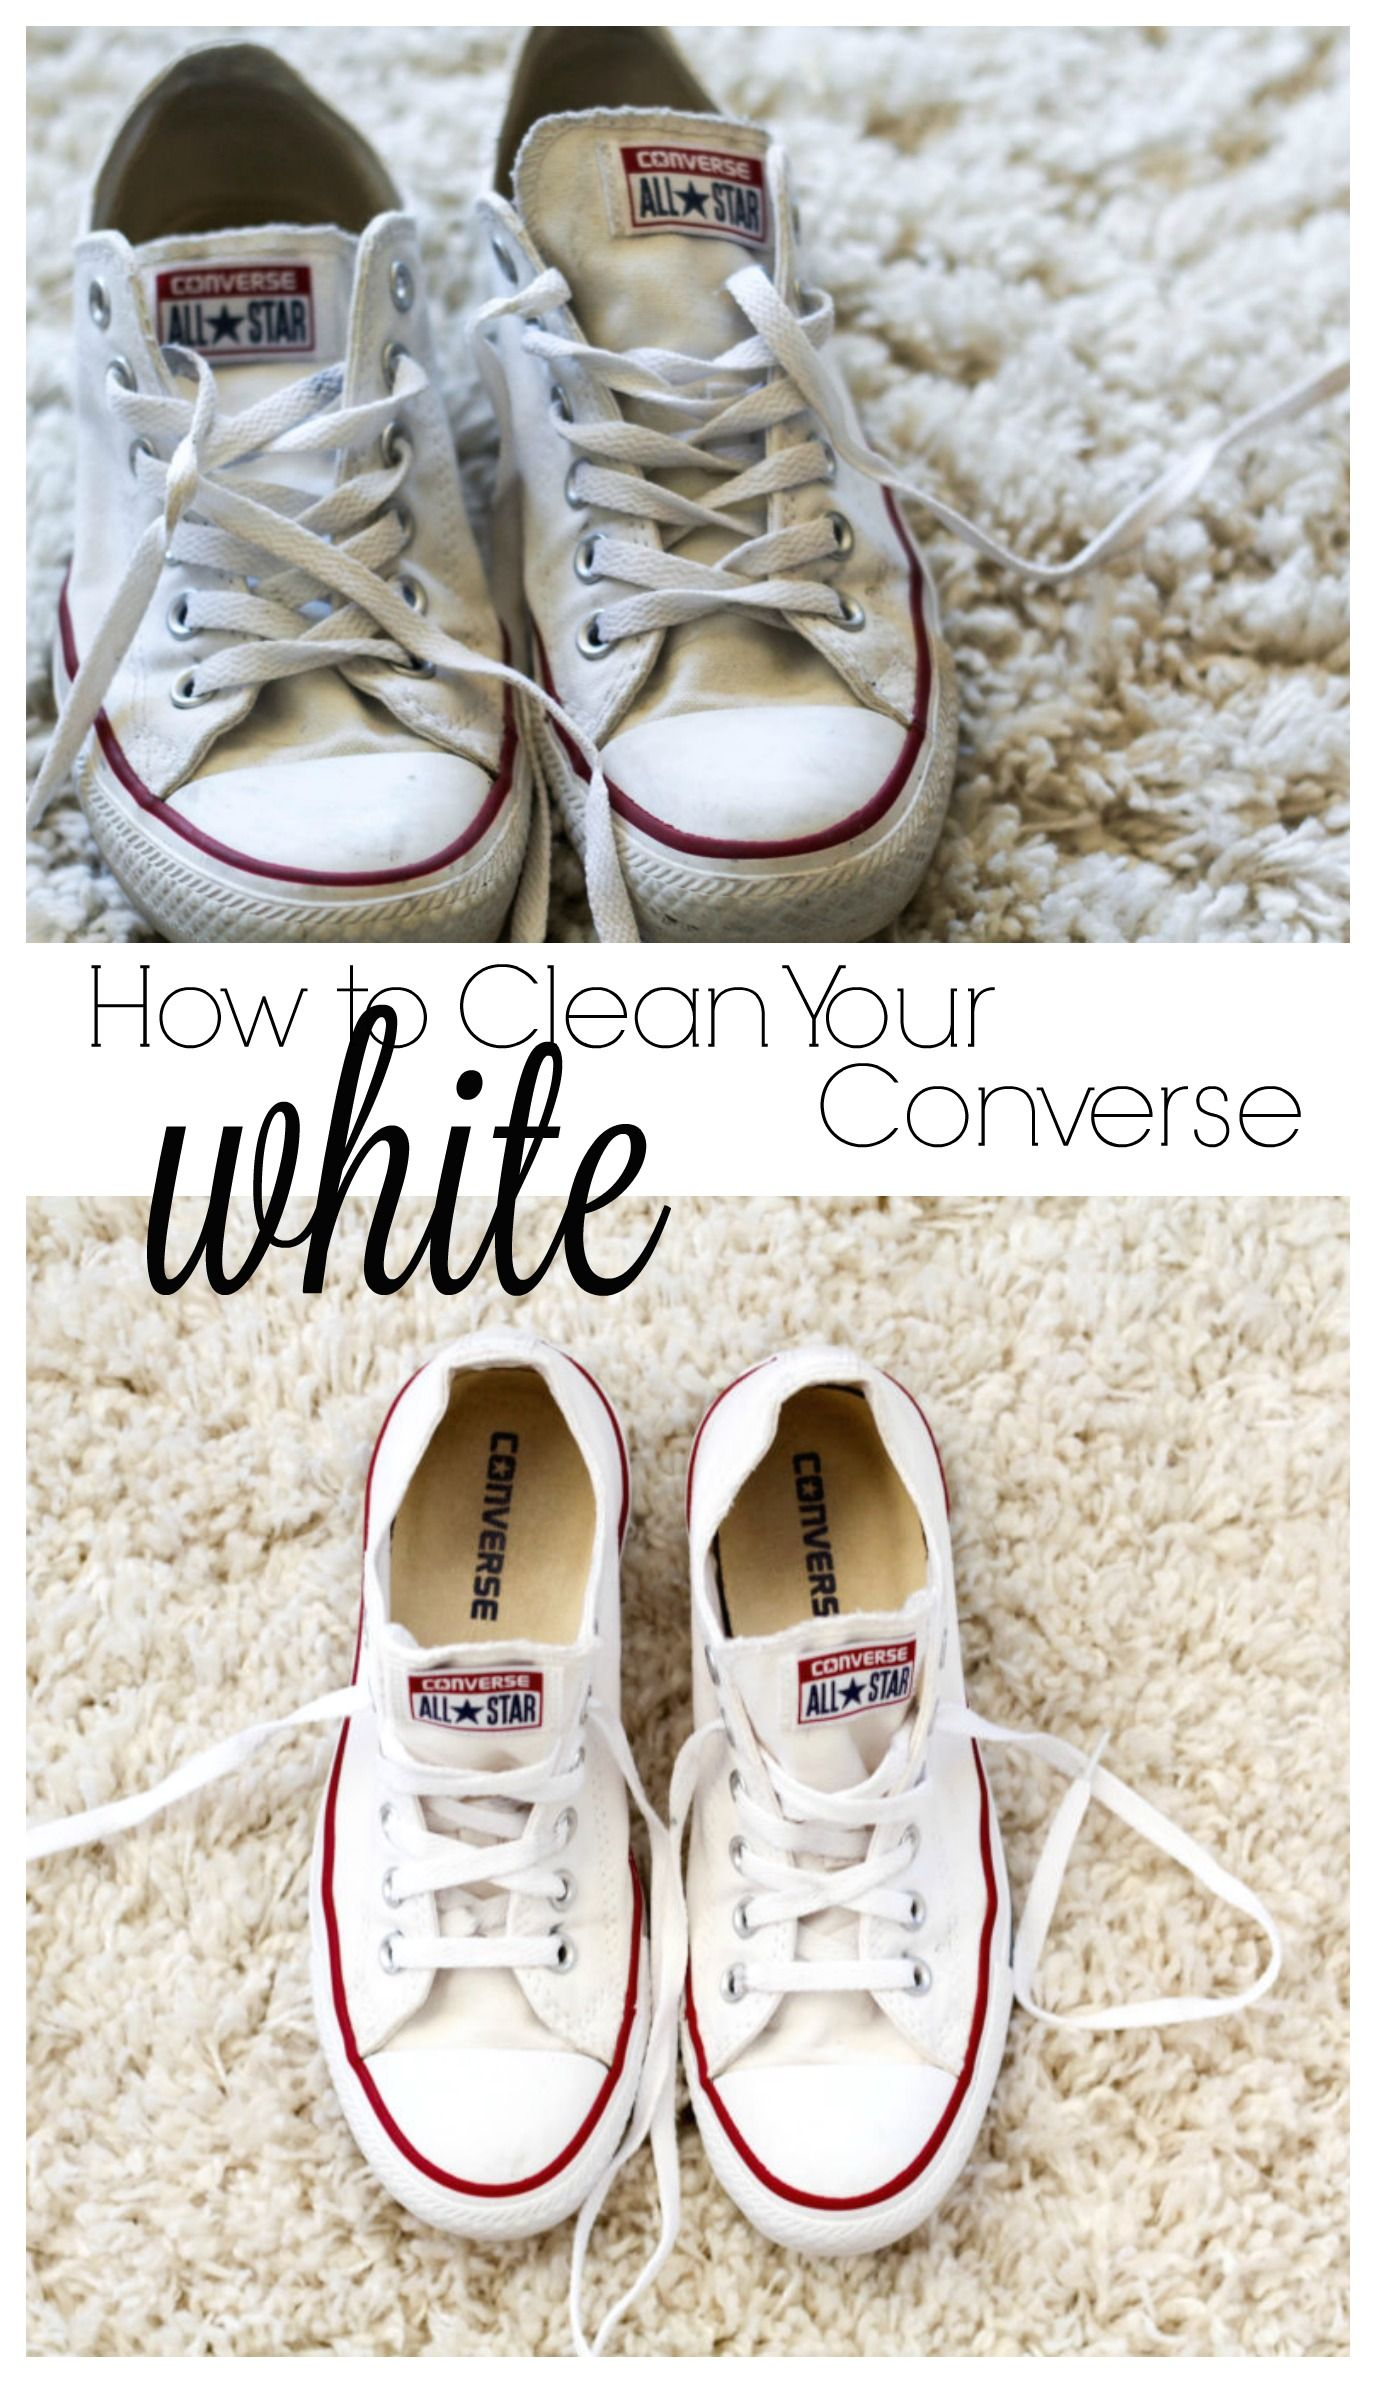 48fa2ce3be5f How to Clean Your White Converse